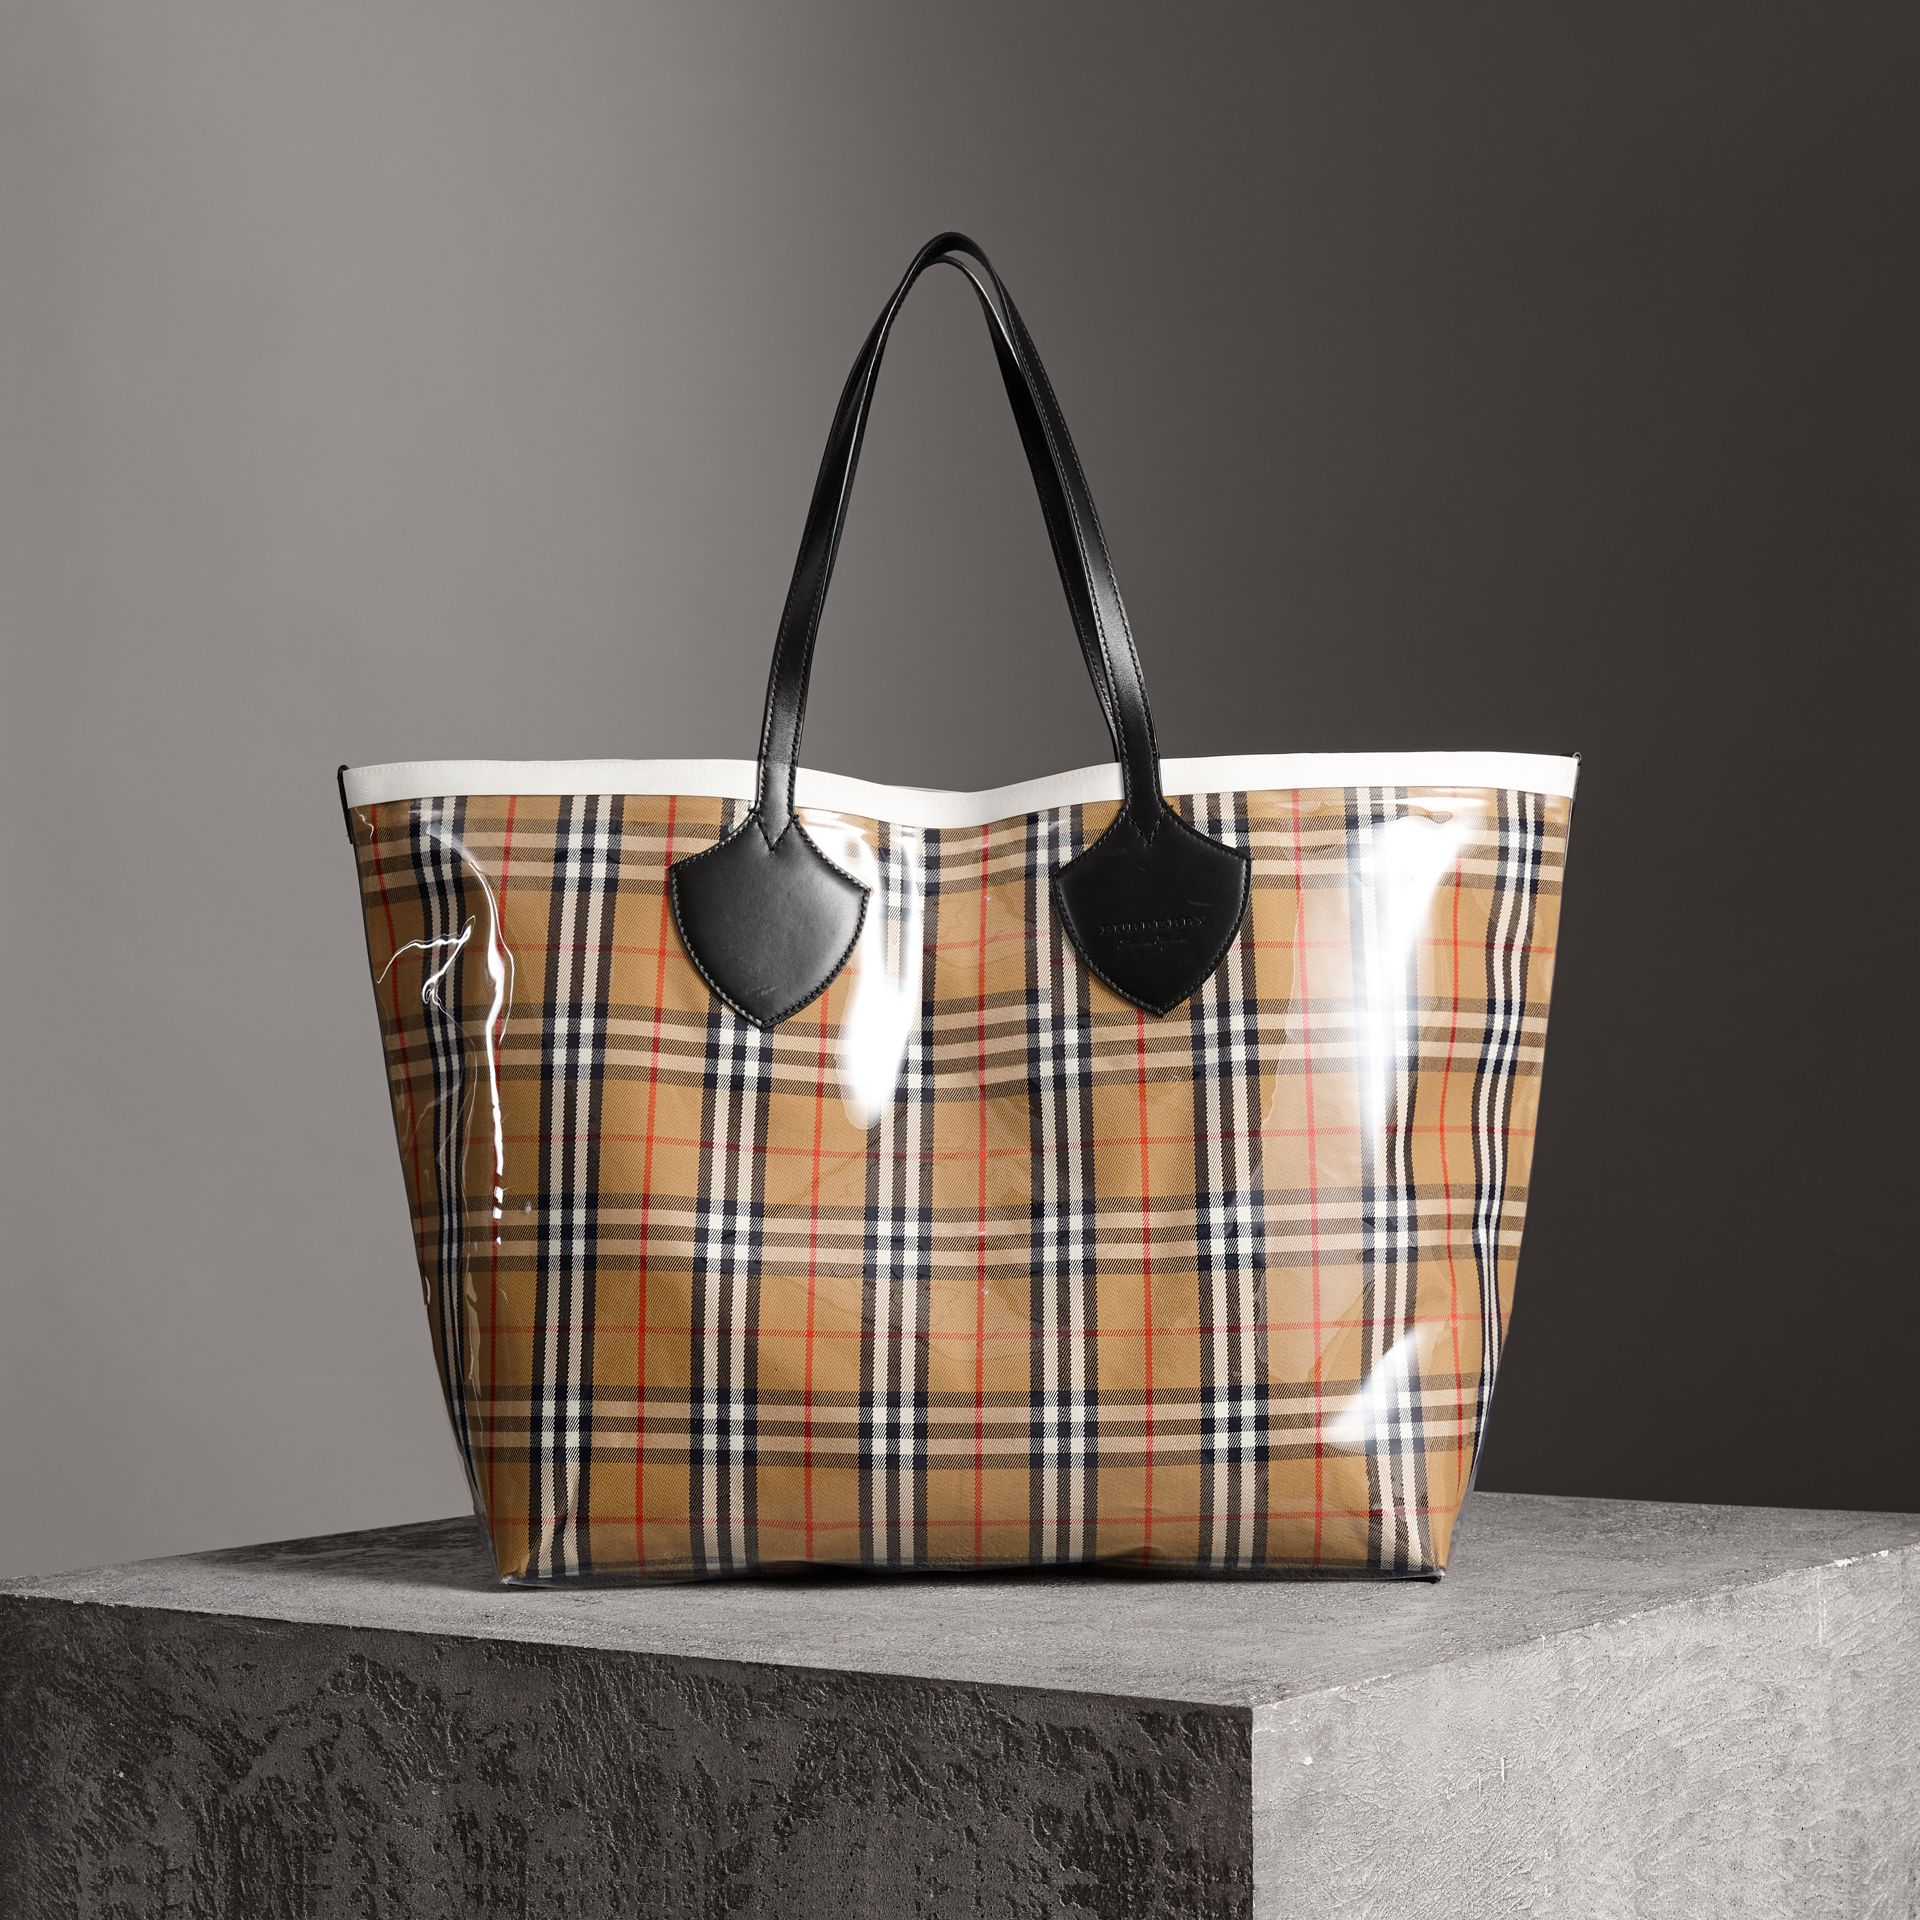 Sac tote The Giant en plastique et coton à motif Vintage check (Jaune Antique/blanc) - Femme | Burberry - photo de la galerie 0